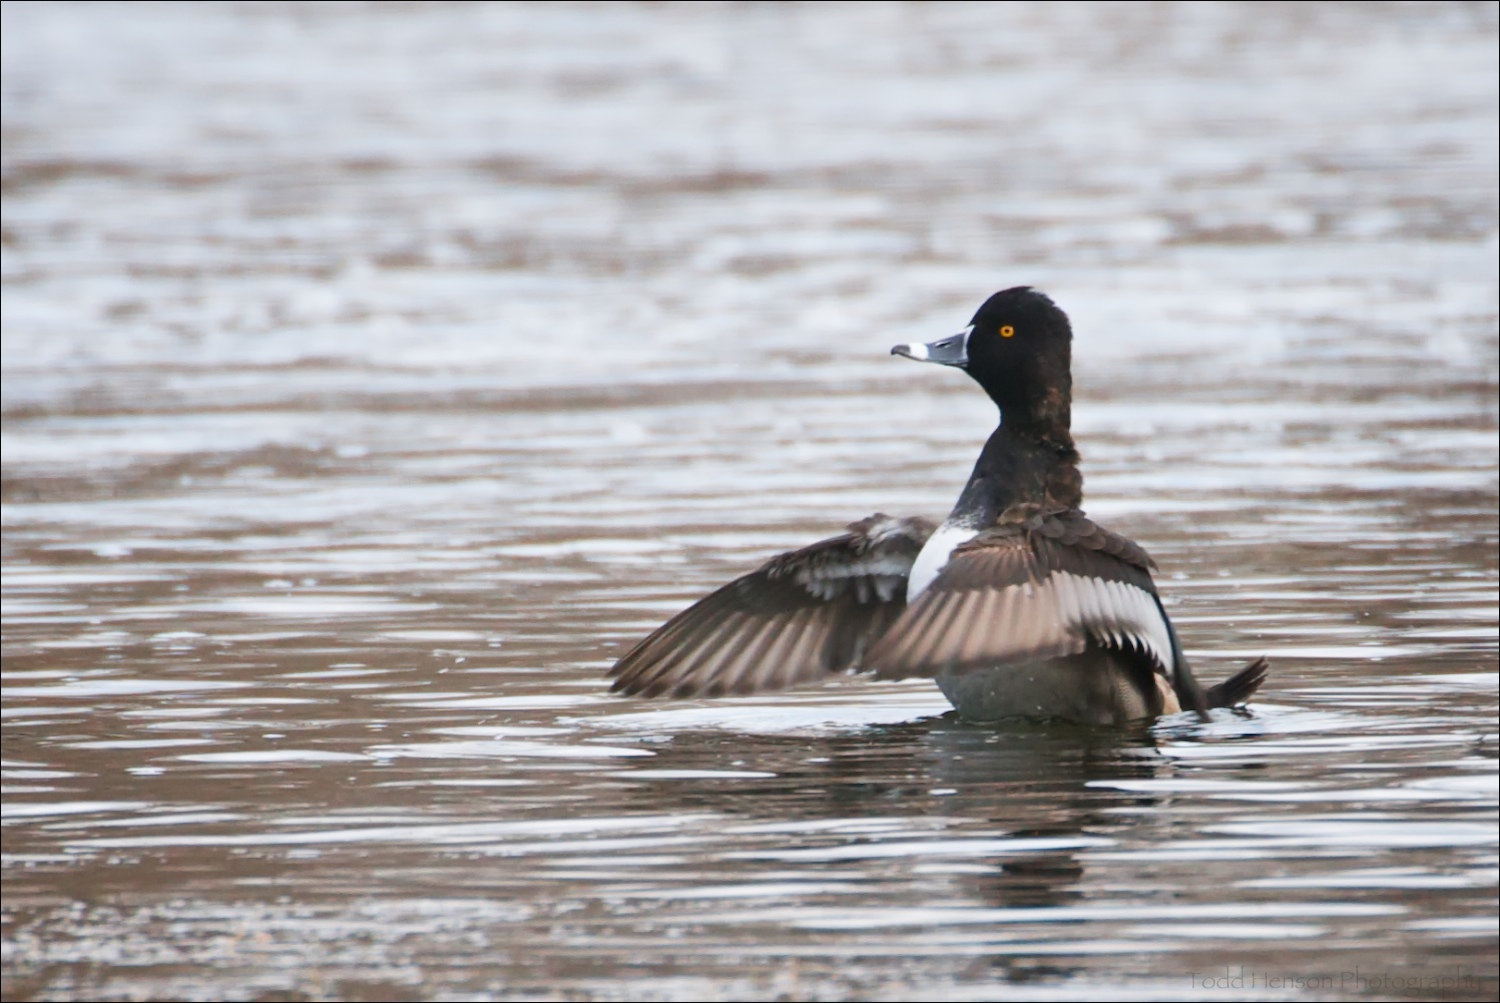 Male Ring-necked Duck flapping wings